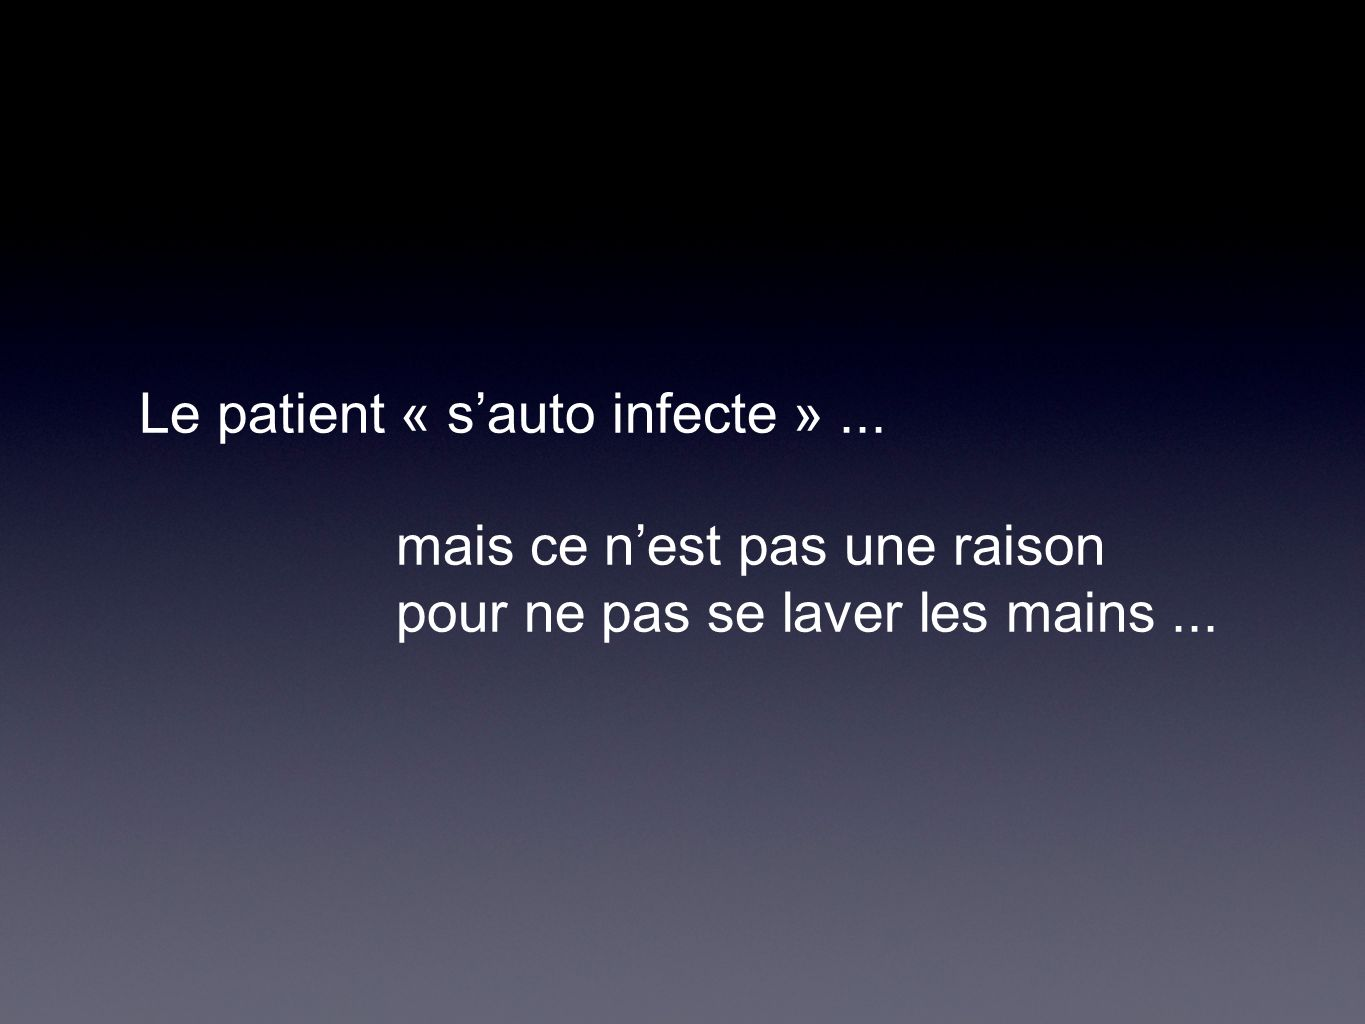 Le patient « s'auto infecte » ...